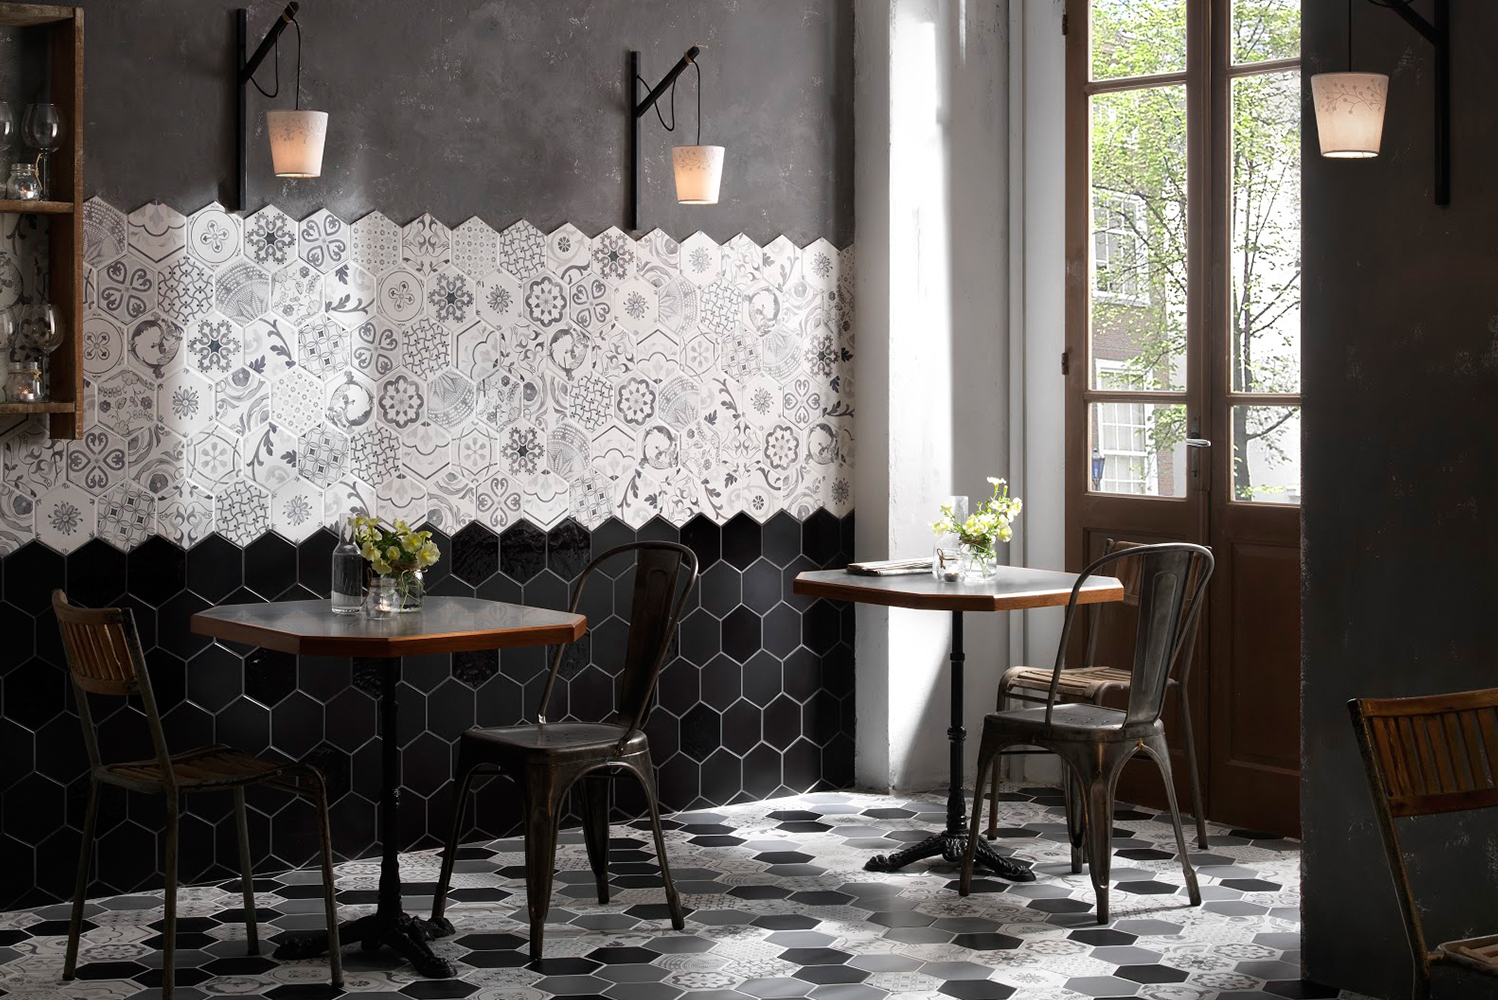 Nemo Tile + Stone launched Gramercy.